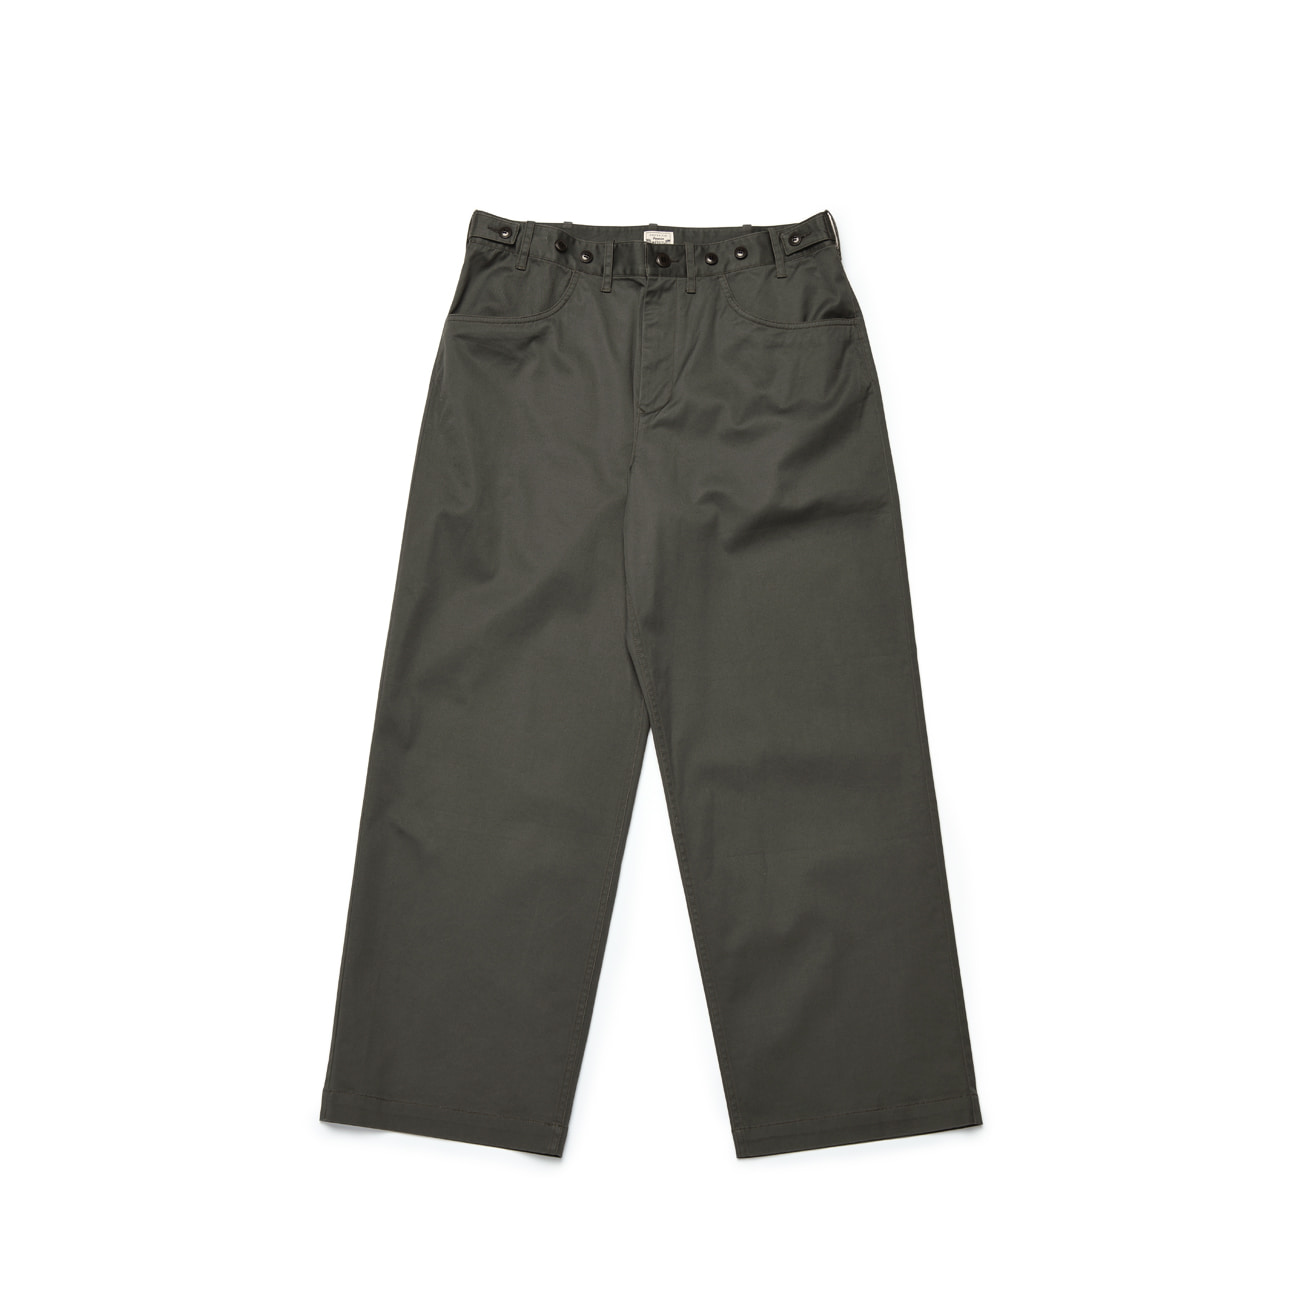 All-Need Pants Charcoal